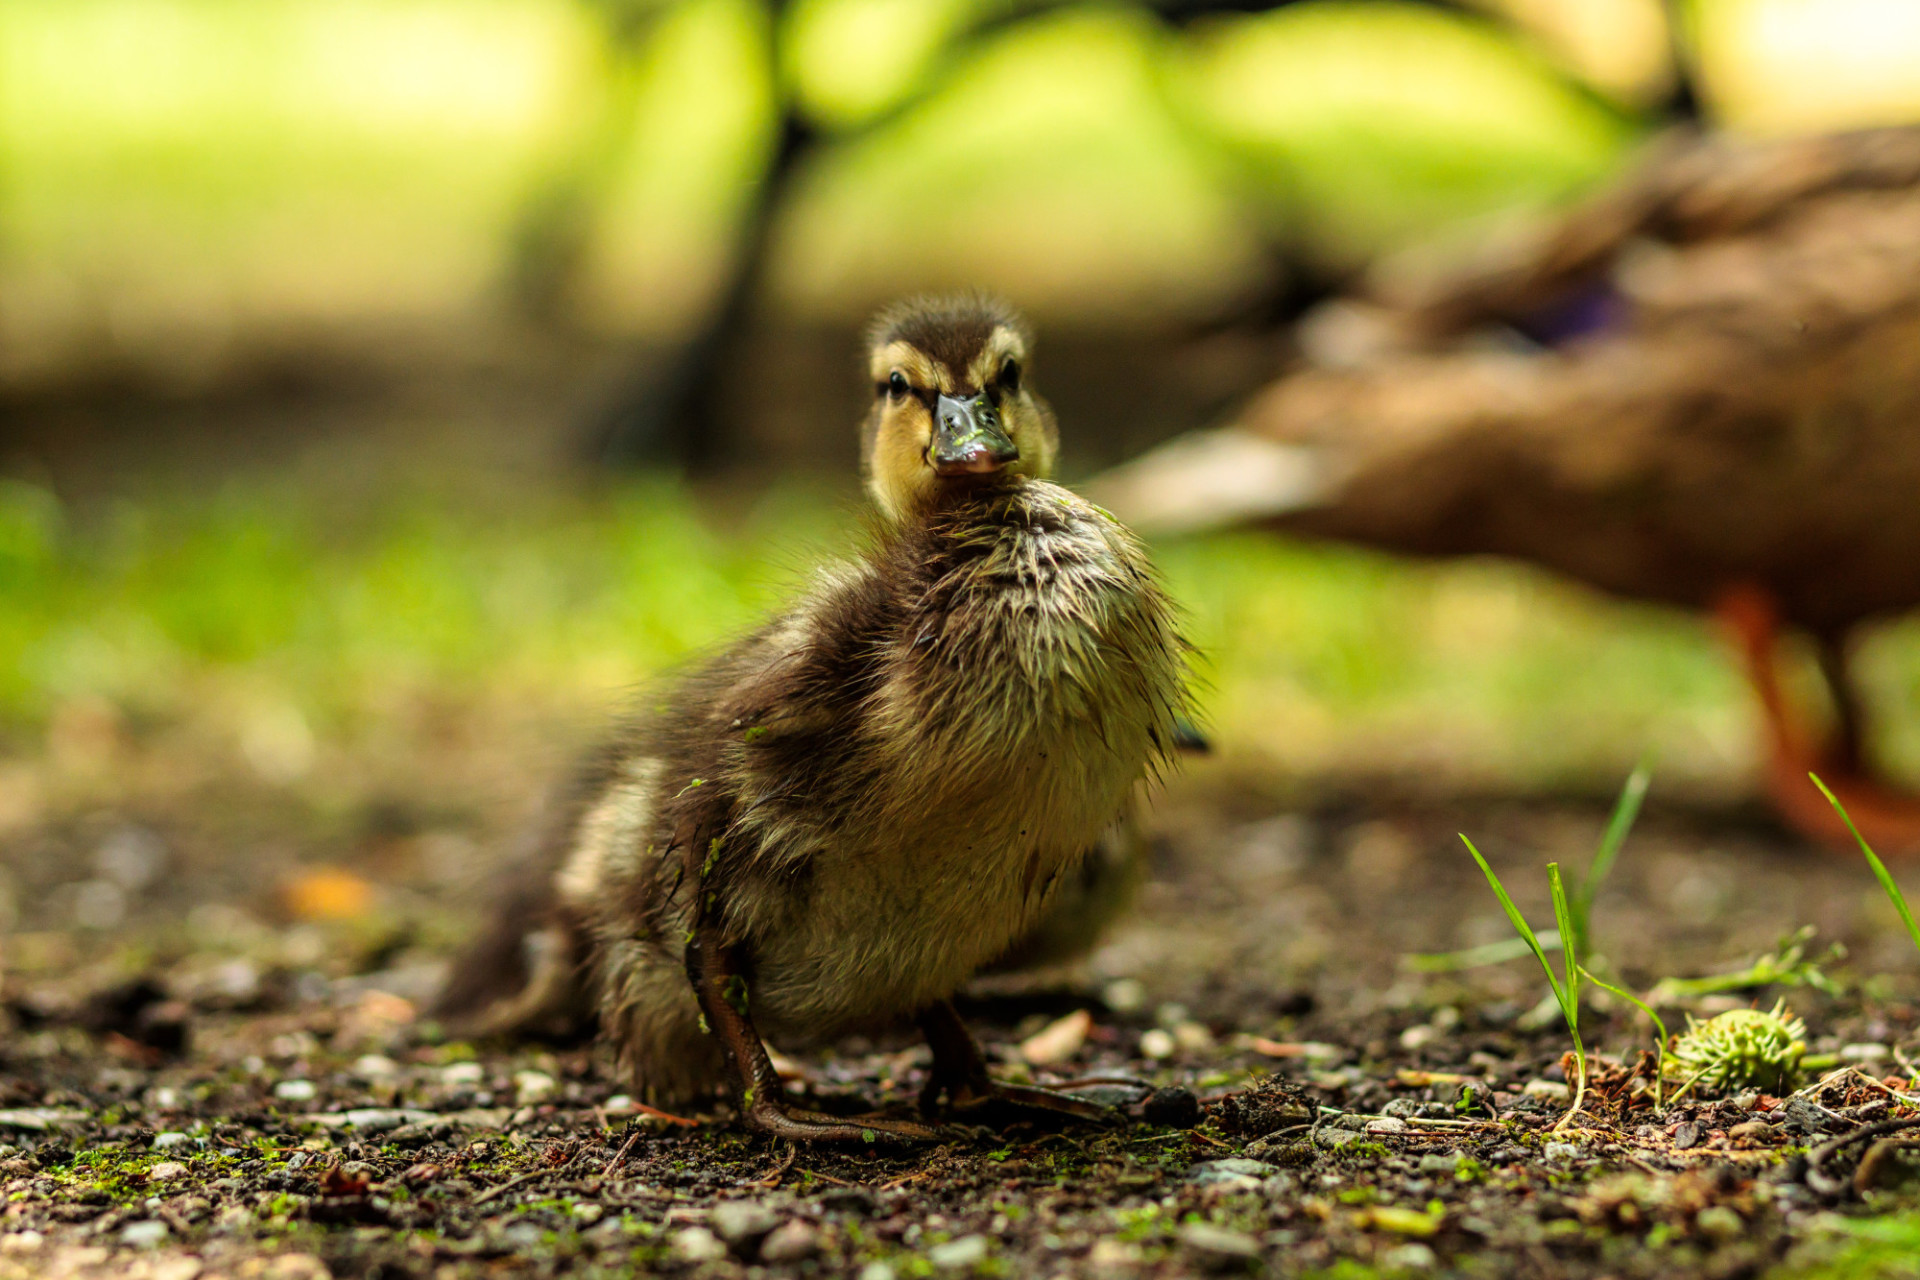 A duckling looks directly into the camera